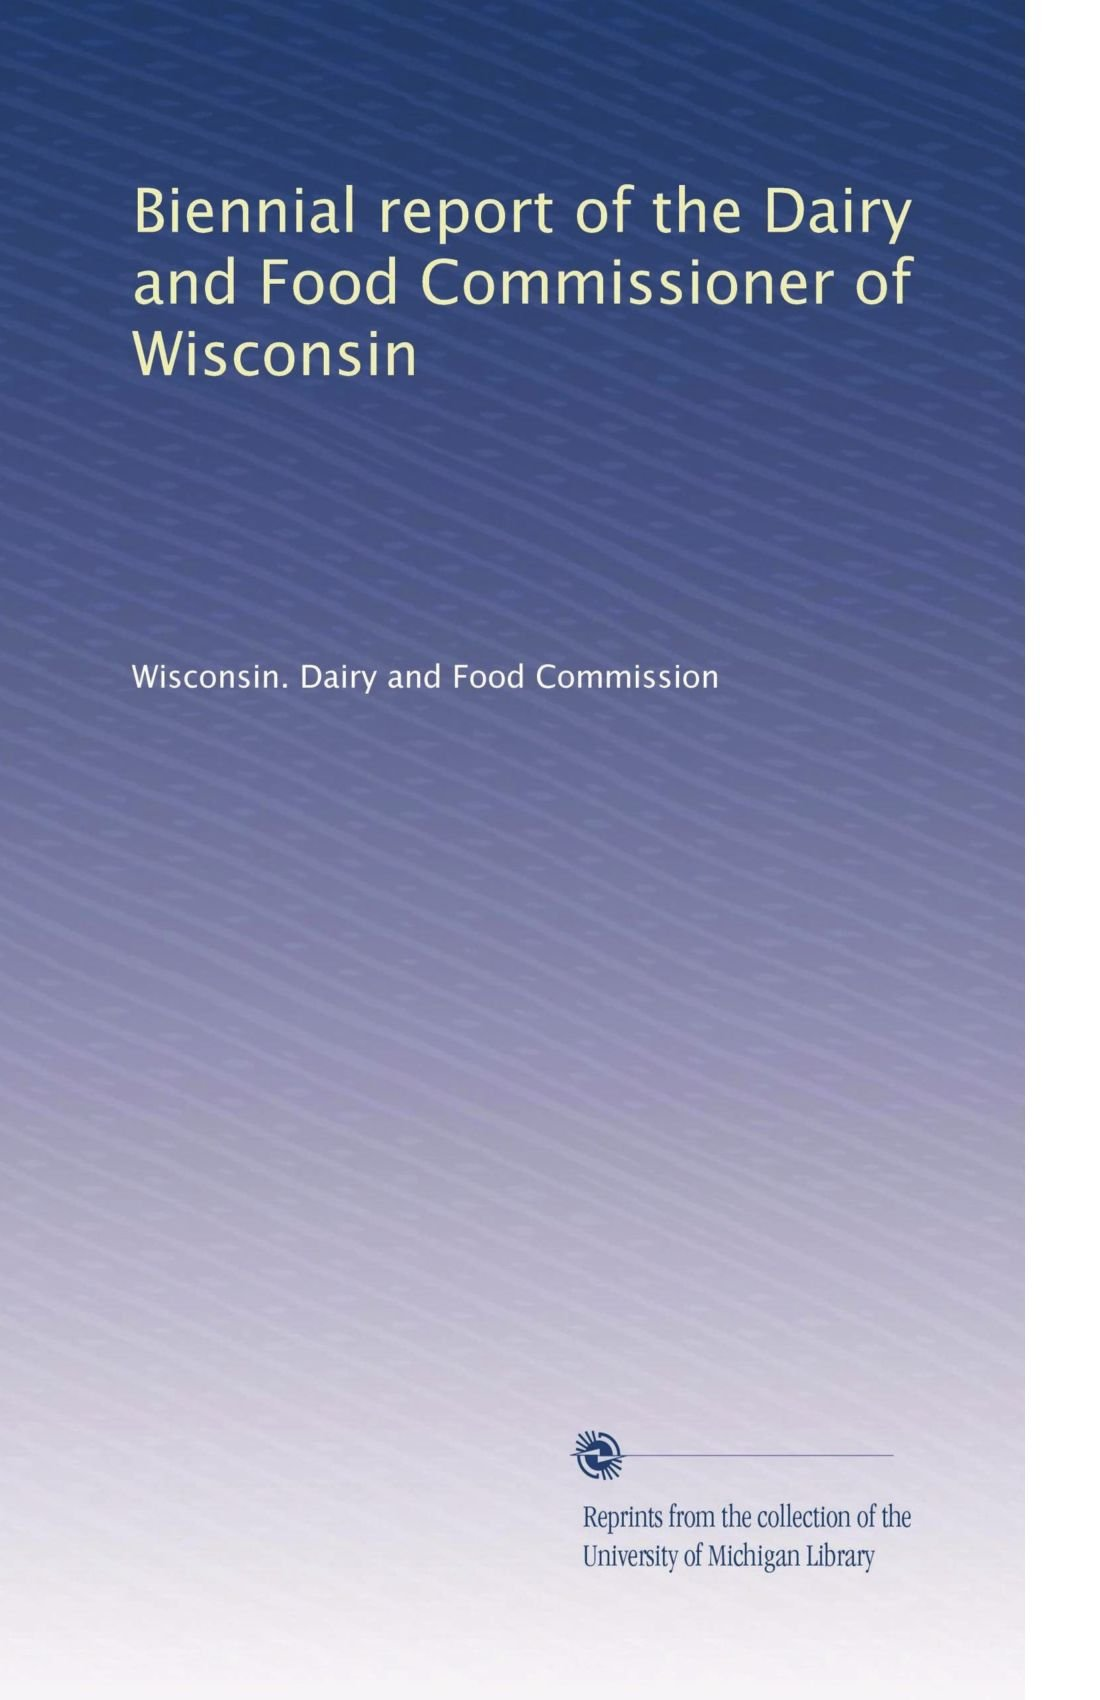 Biennial report of the Dairy and Food Commissioner of Wisconsin (Volume 6) ebook